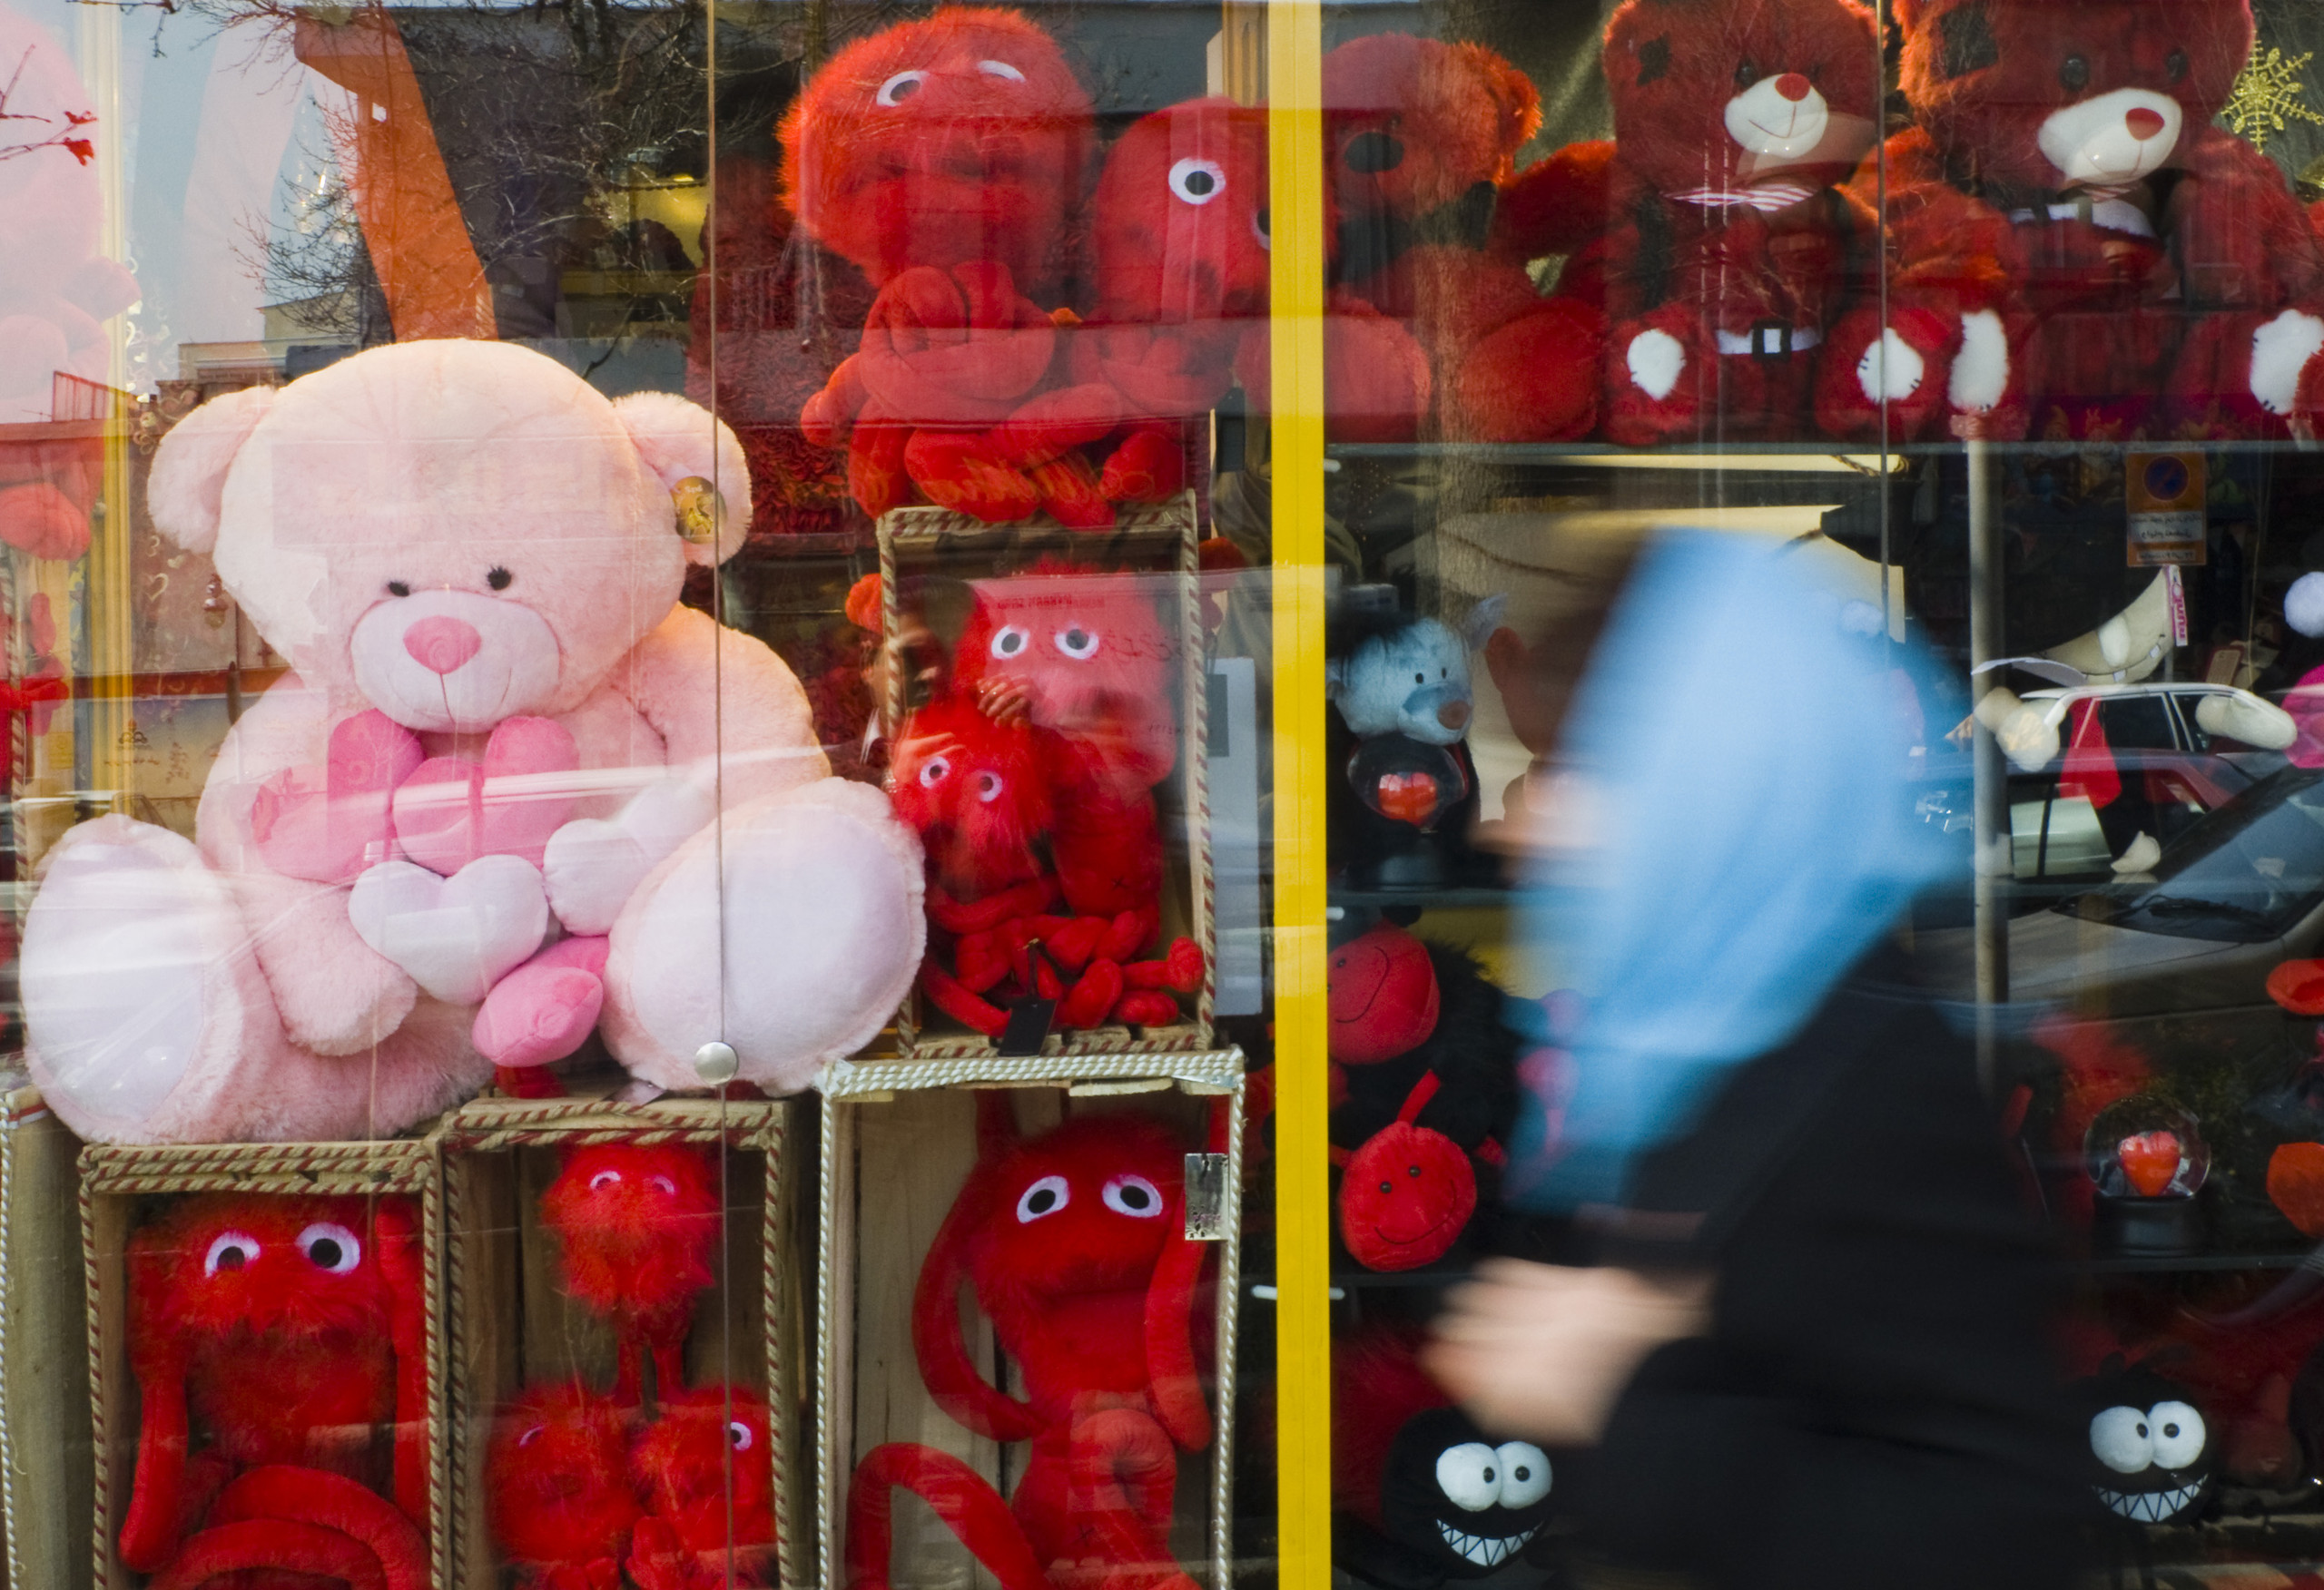 A Valentine's Day window display decorated only with plush, red teddy bears and one big pink teddy bear.